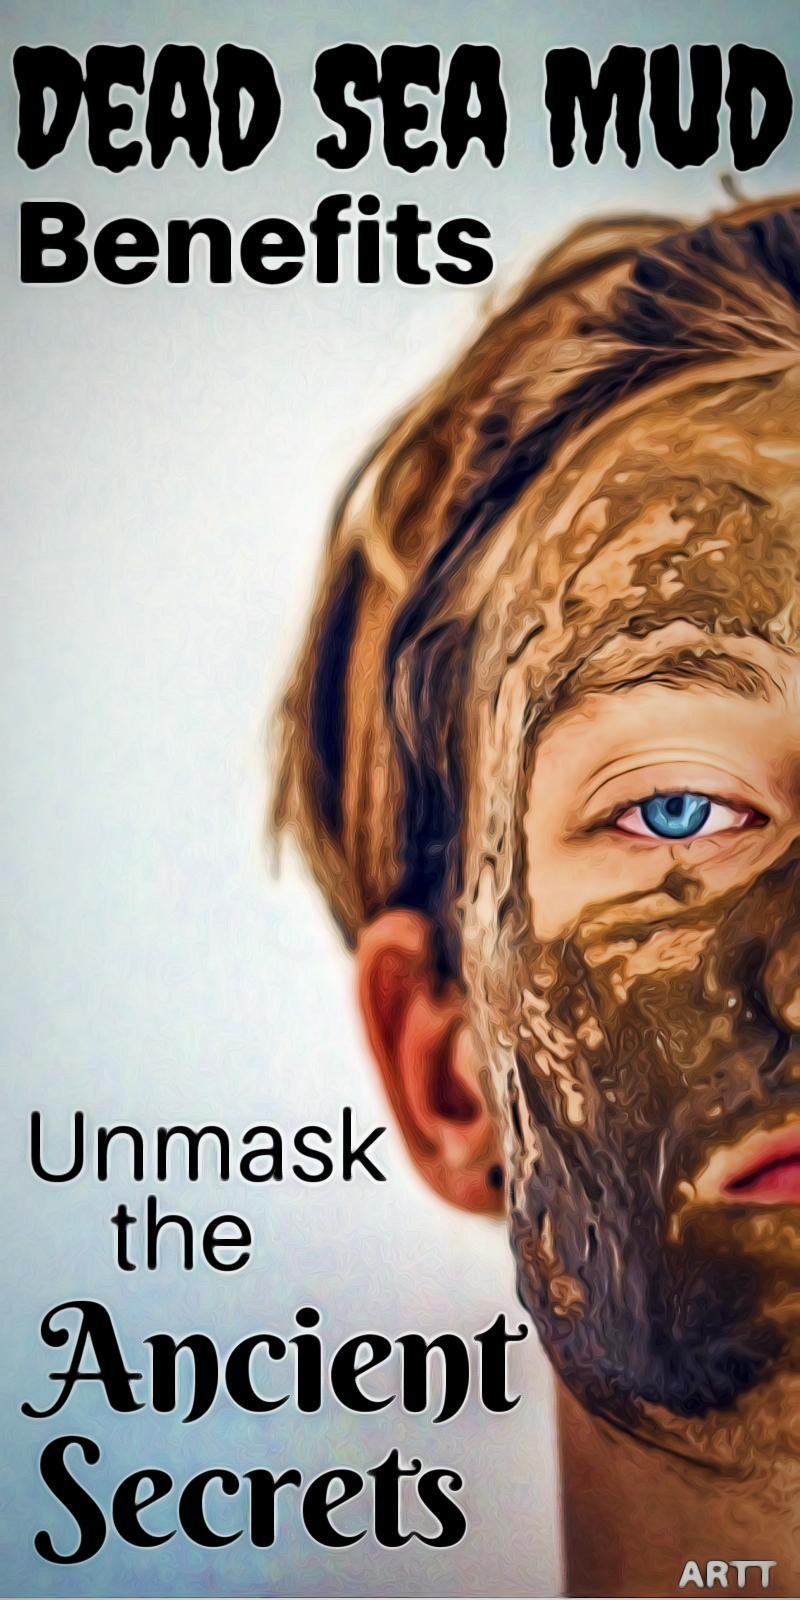 Dead Sea Mud Benefits For Your Skin - Learn the Ancient Secrets of the Dead Sea Mud #deadseamud #skincare #skincareproducts #reducewrinkles | skin care | facial | facial skin care | mud packs | skin care products | face mask | reduce wrinkles | clean pores | exfoliate | moisturizer | oily skin | dry skin | healthy skin | | soft skin | clear skin | acne | pimples | hair loss | dandruff | healthy hair | mineral-rich mud | sensitive skin